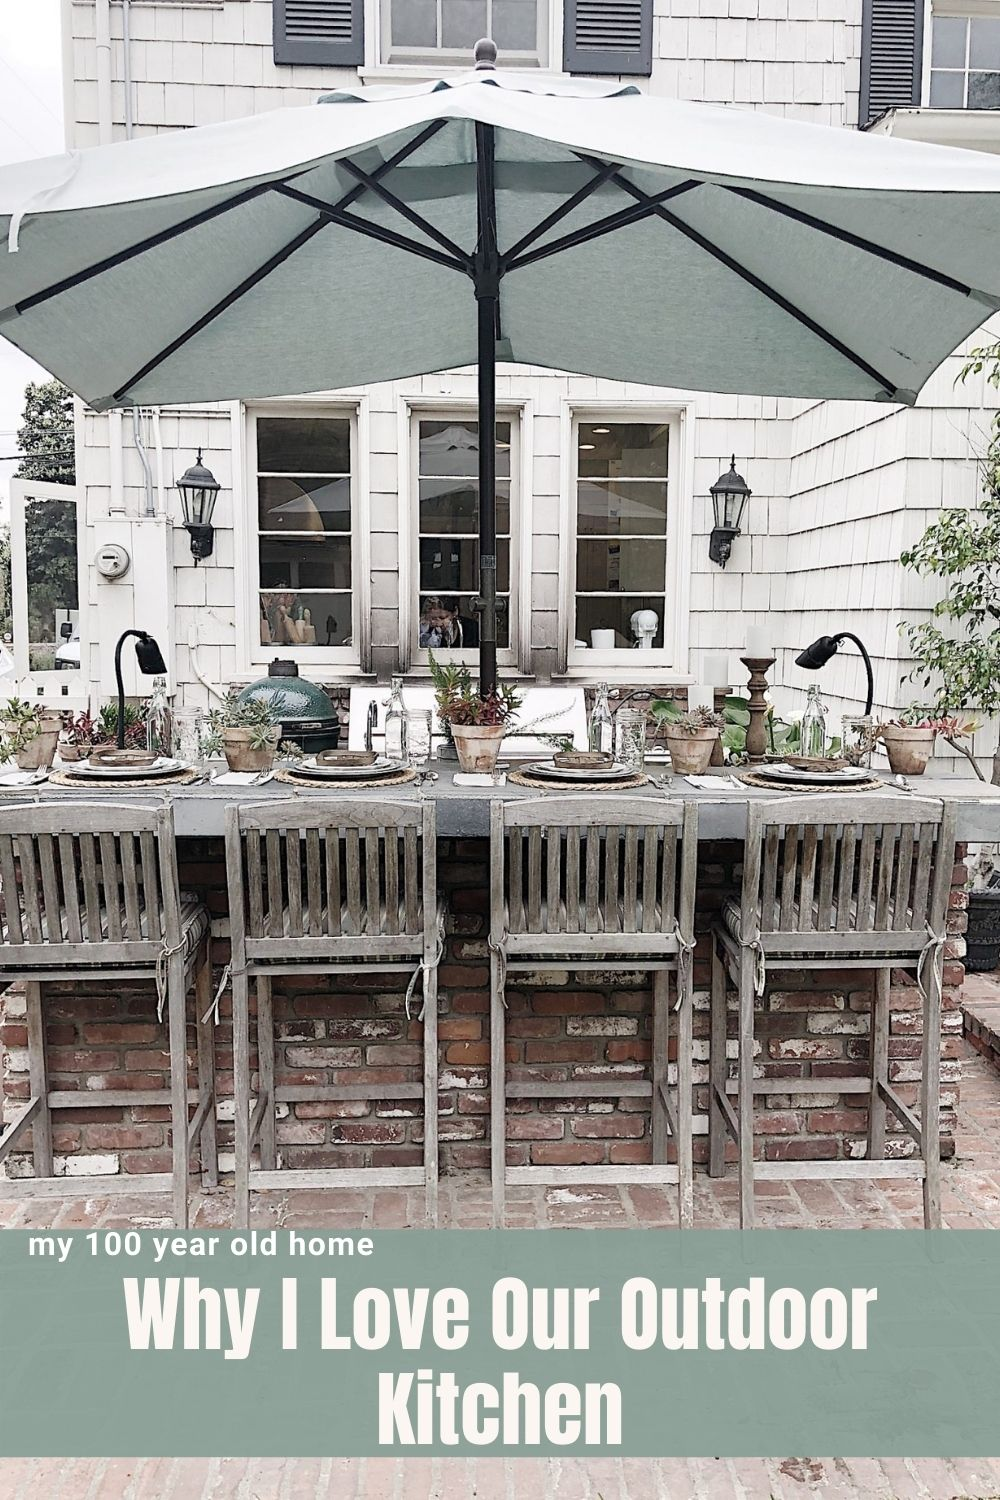 The theme for my blog this month is summer entertaining. With summer just around the corner, it is the perfect time to get everything ready outside for outdoor cooking and entertaining.